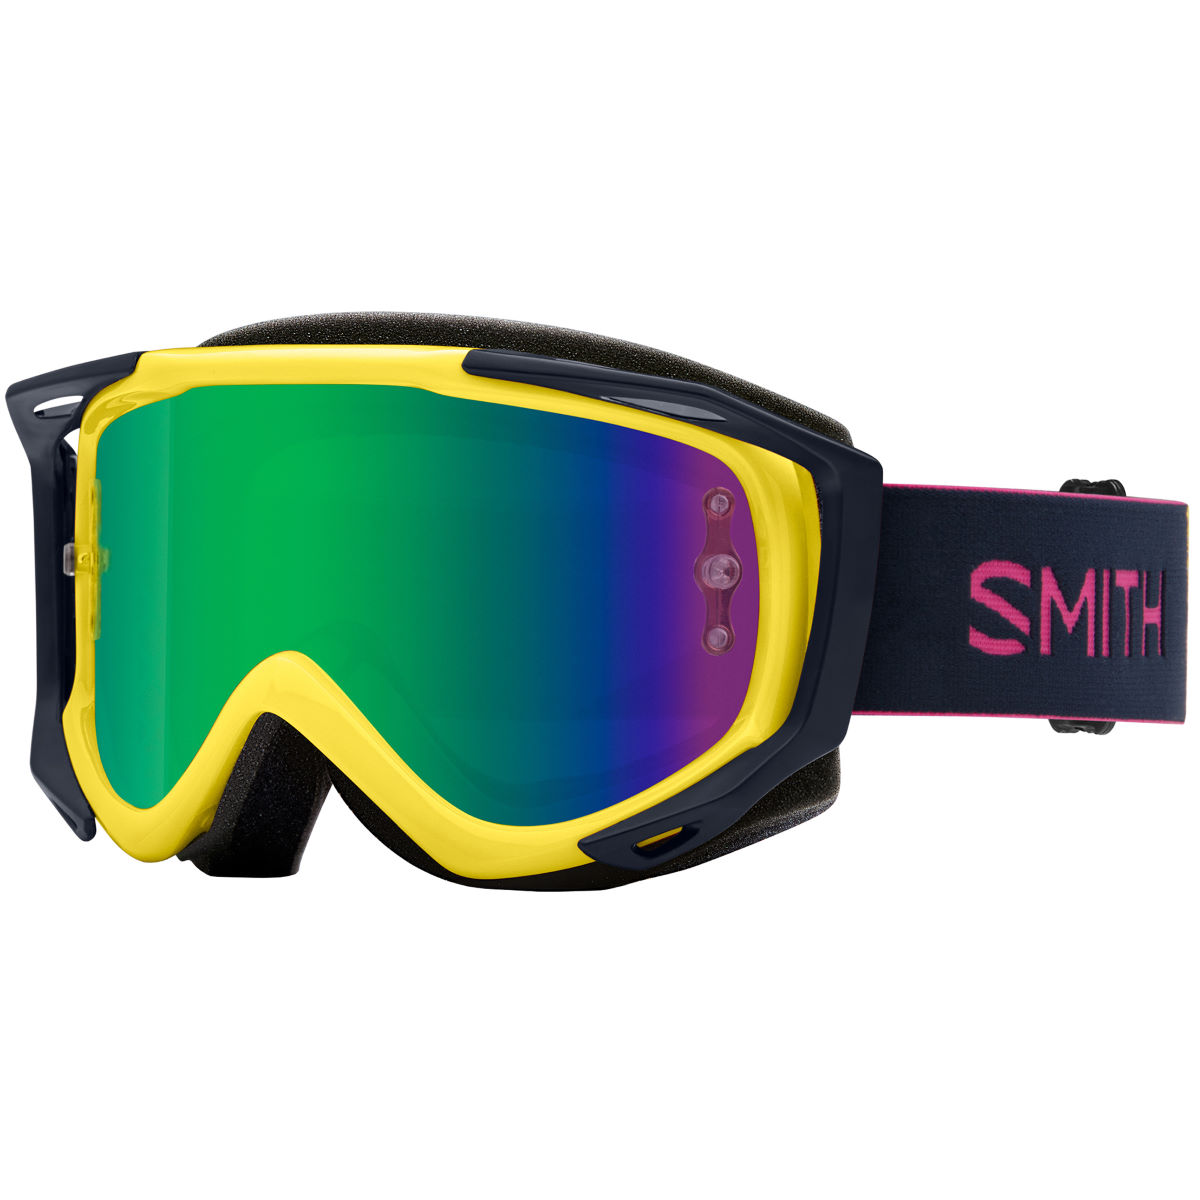 Smith Smith Fuel V.2 SW-X M Goggles Green Mirror Lens   Cycling Goggles